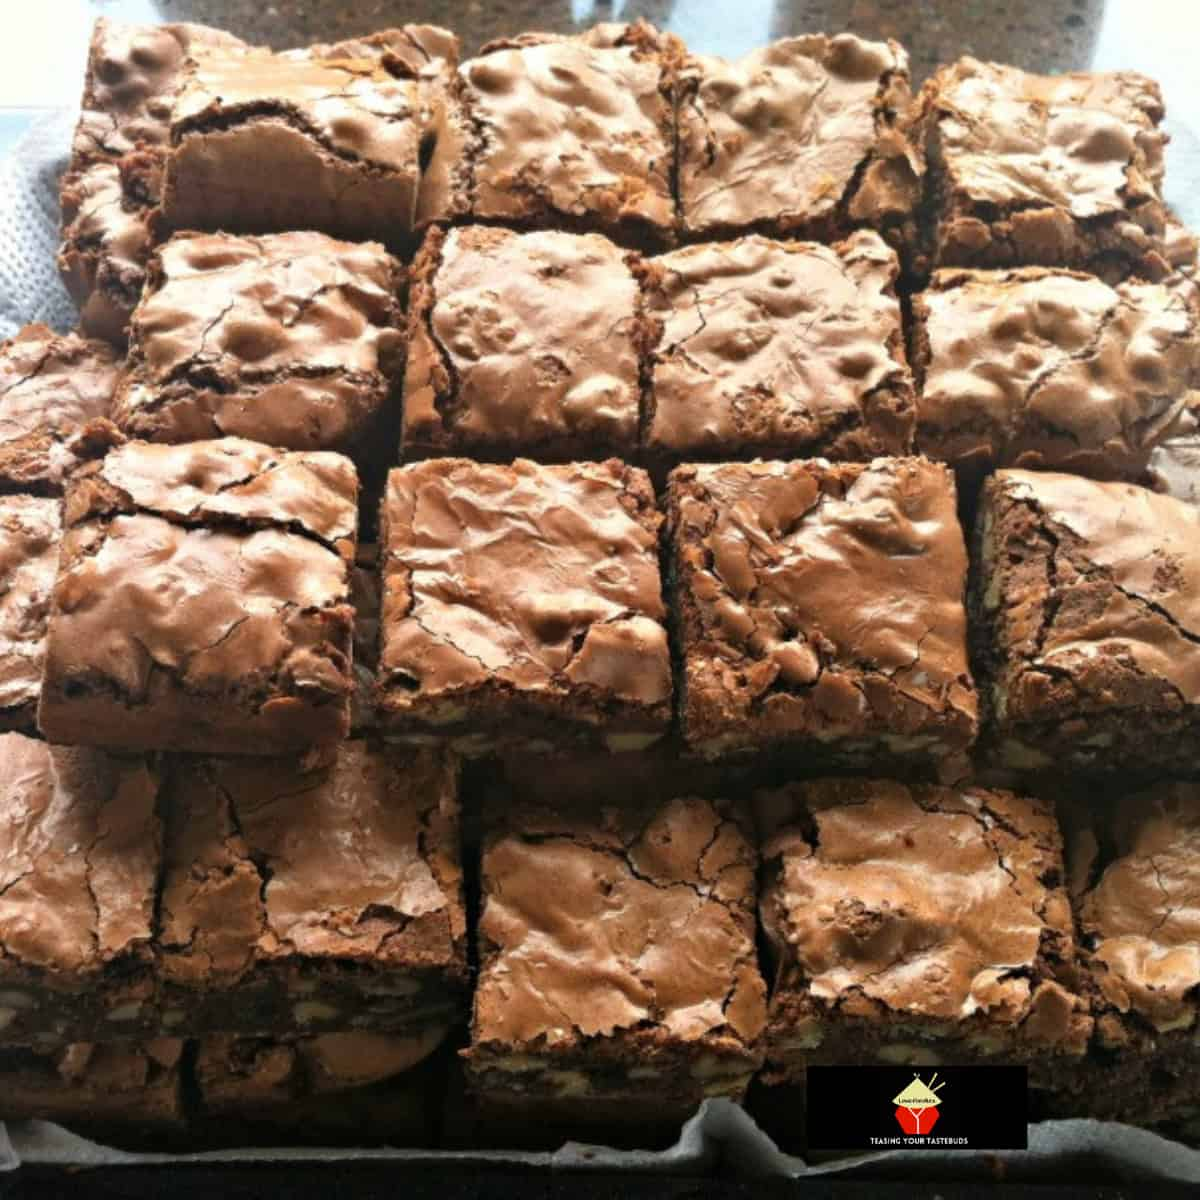 Oh So Good Brownies. Seriously, I have NEVER EVER tasted brownies like these before! They are awesome!